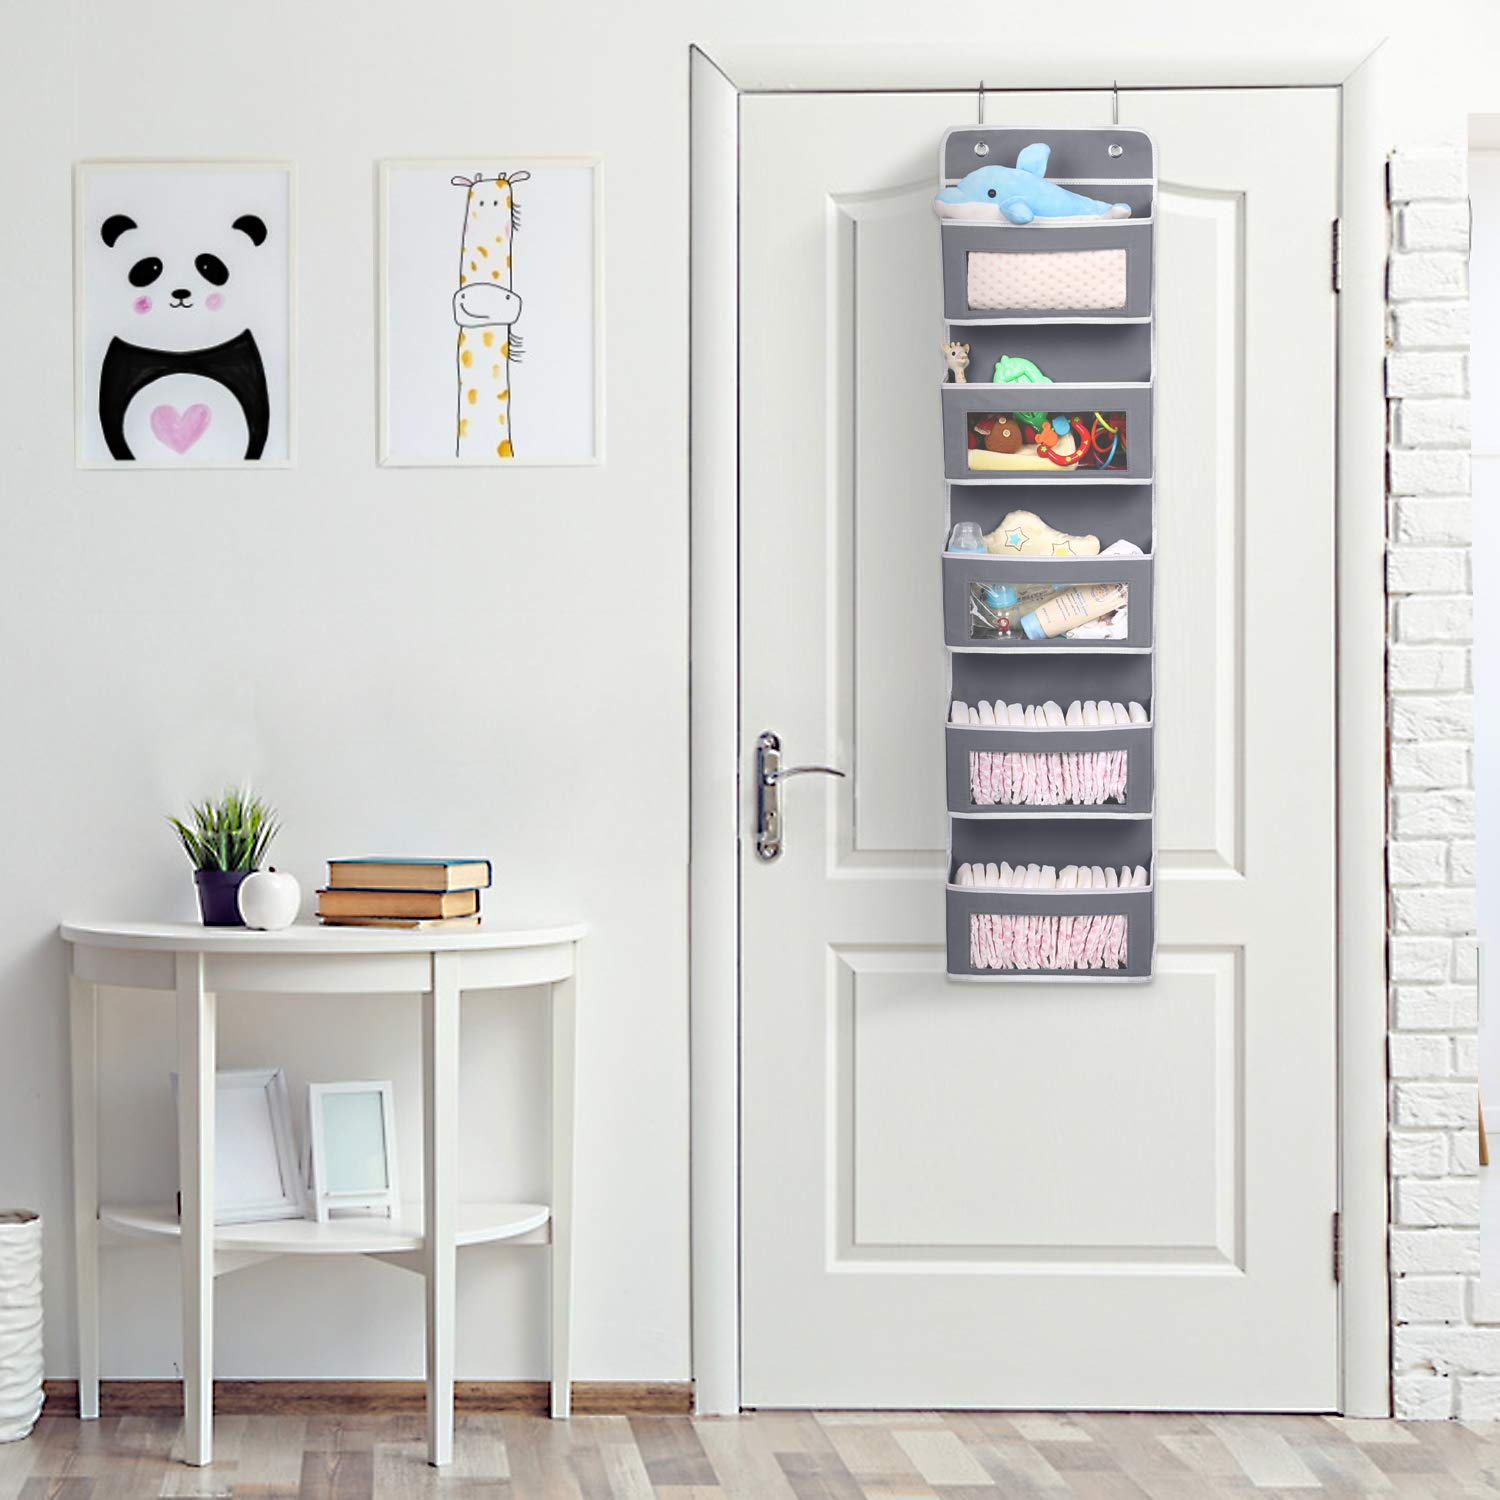 Magicfly Over The Door Organizer and Storage with 5 Large Clear Window Pocket Polka-Dot White Wall Mount Hanging Organizer for Pantry Baby Nursery Bathroom Closet Dorm